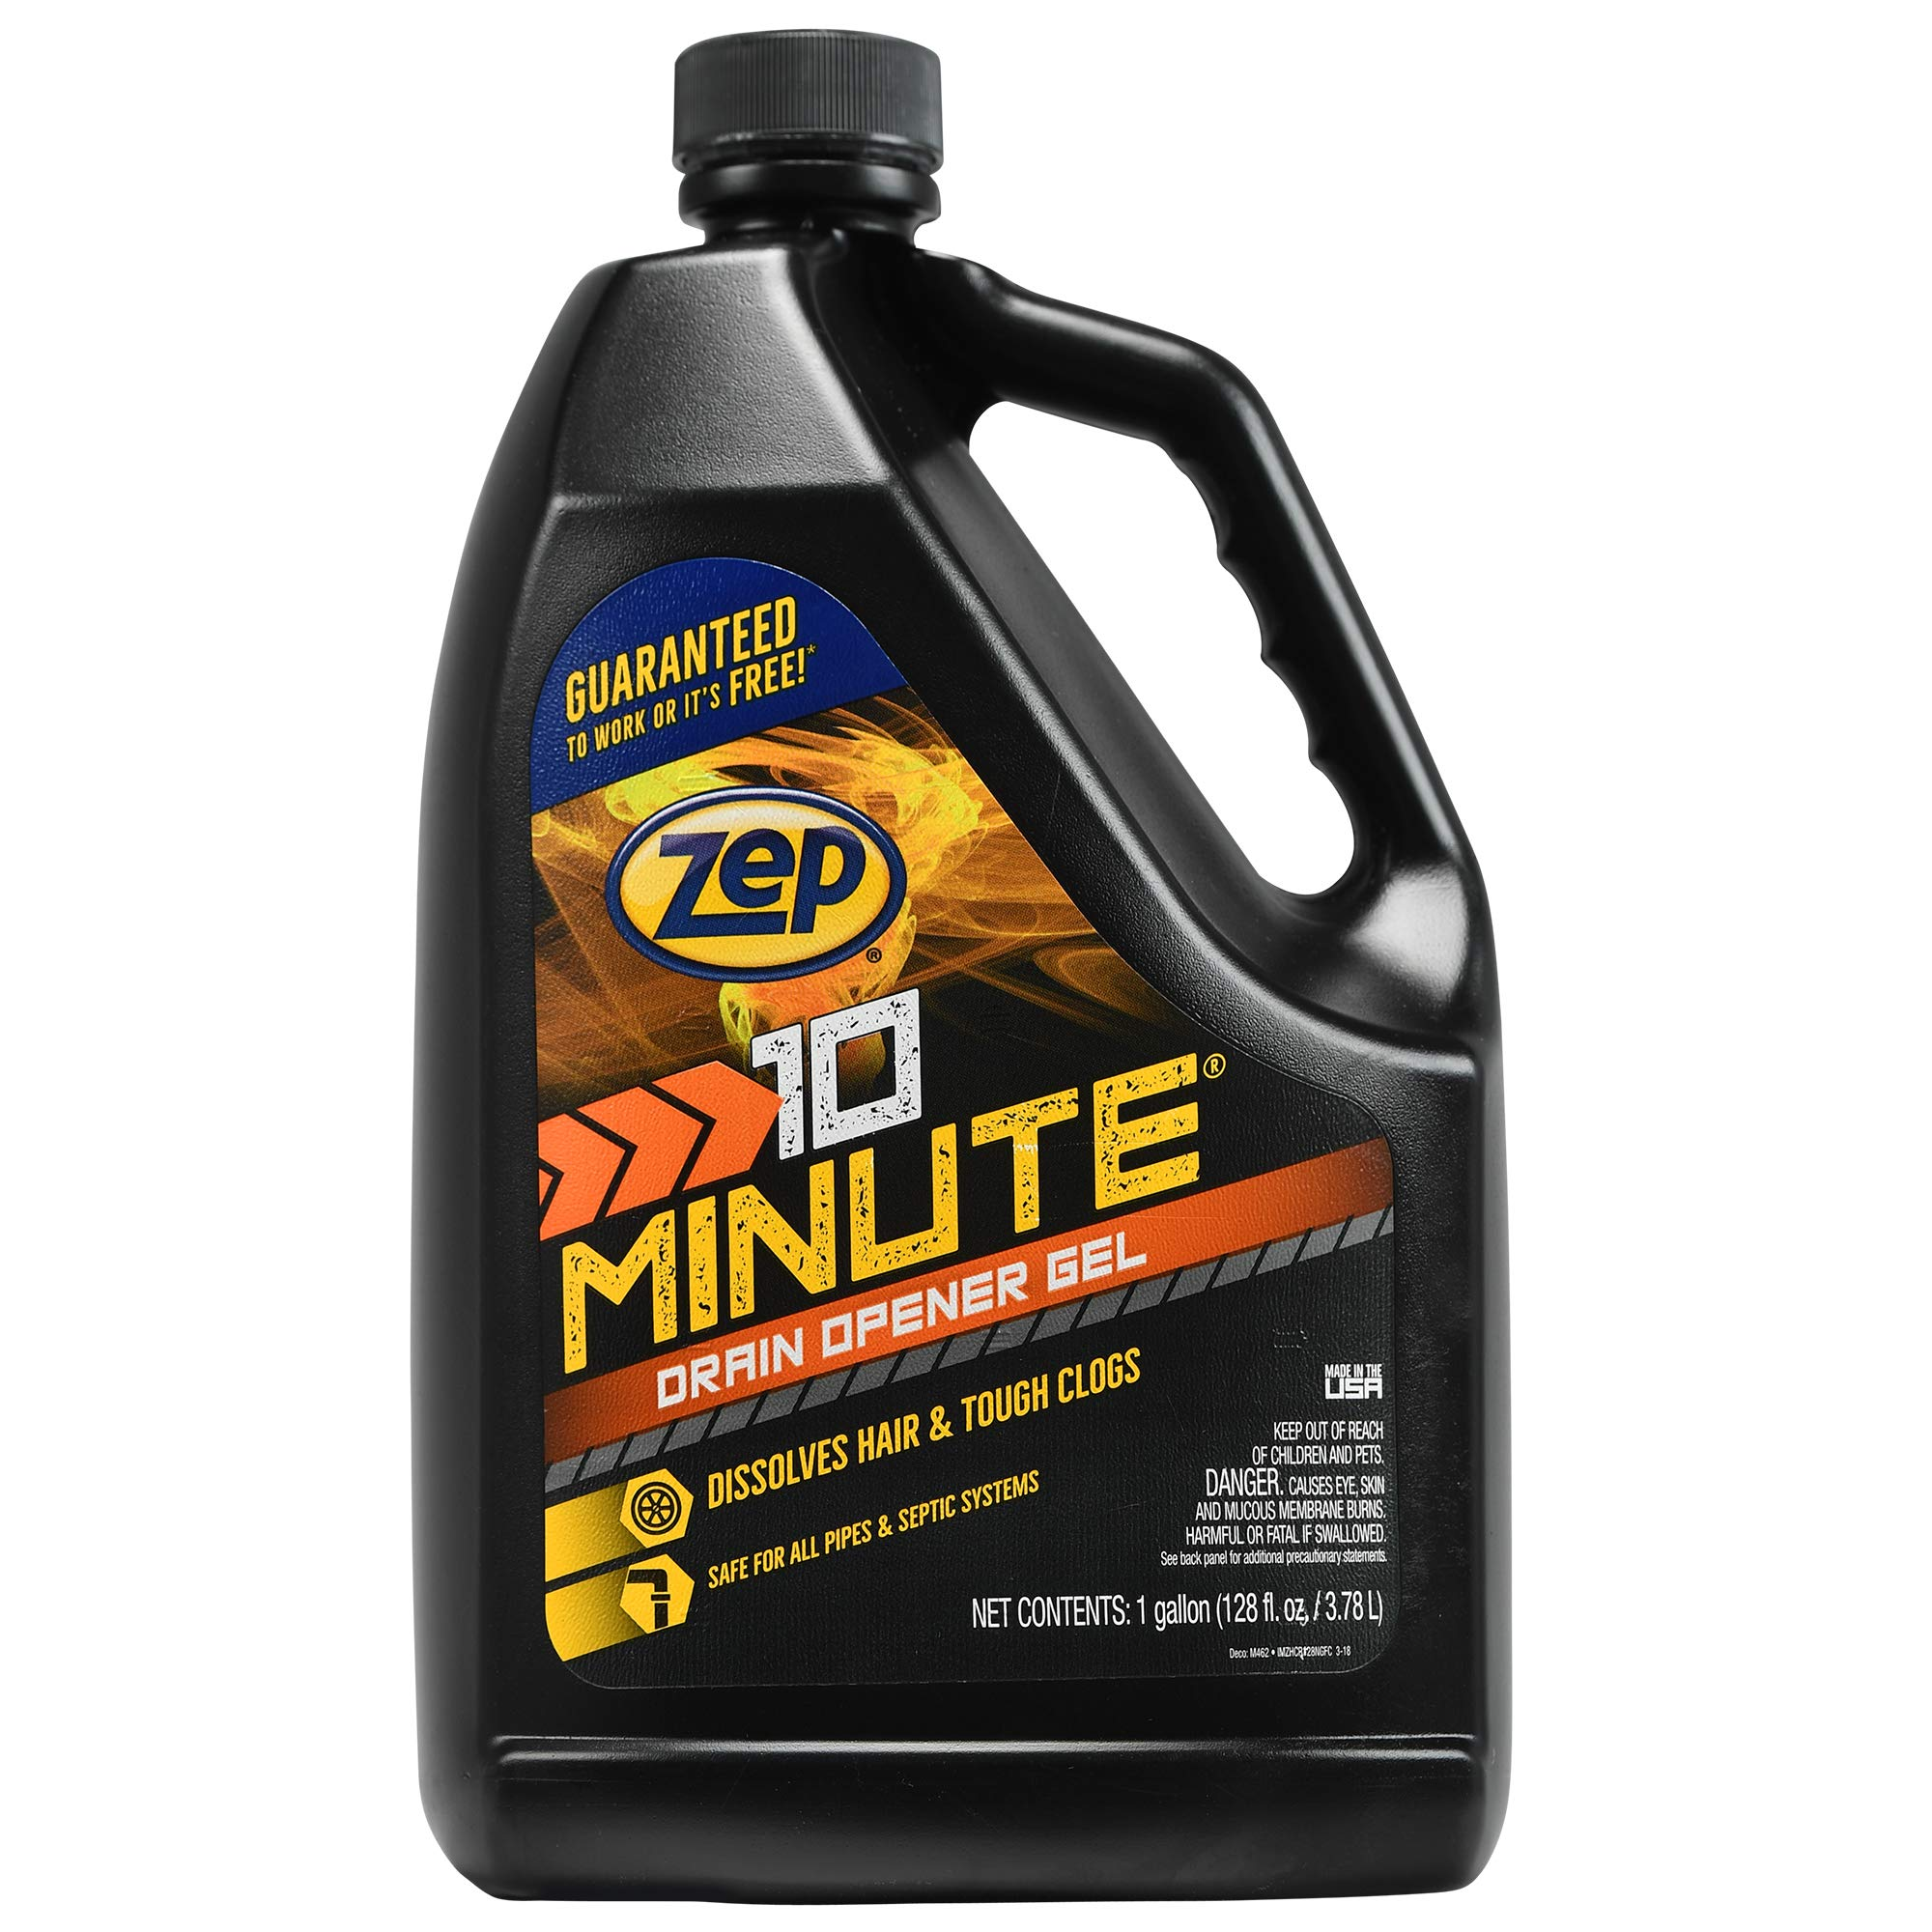 Zep Commercial ZHCR128NG 1 Gallon 10 Minute Hair Clog Remover Gel